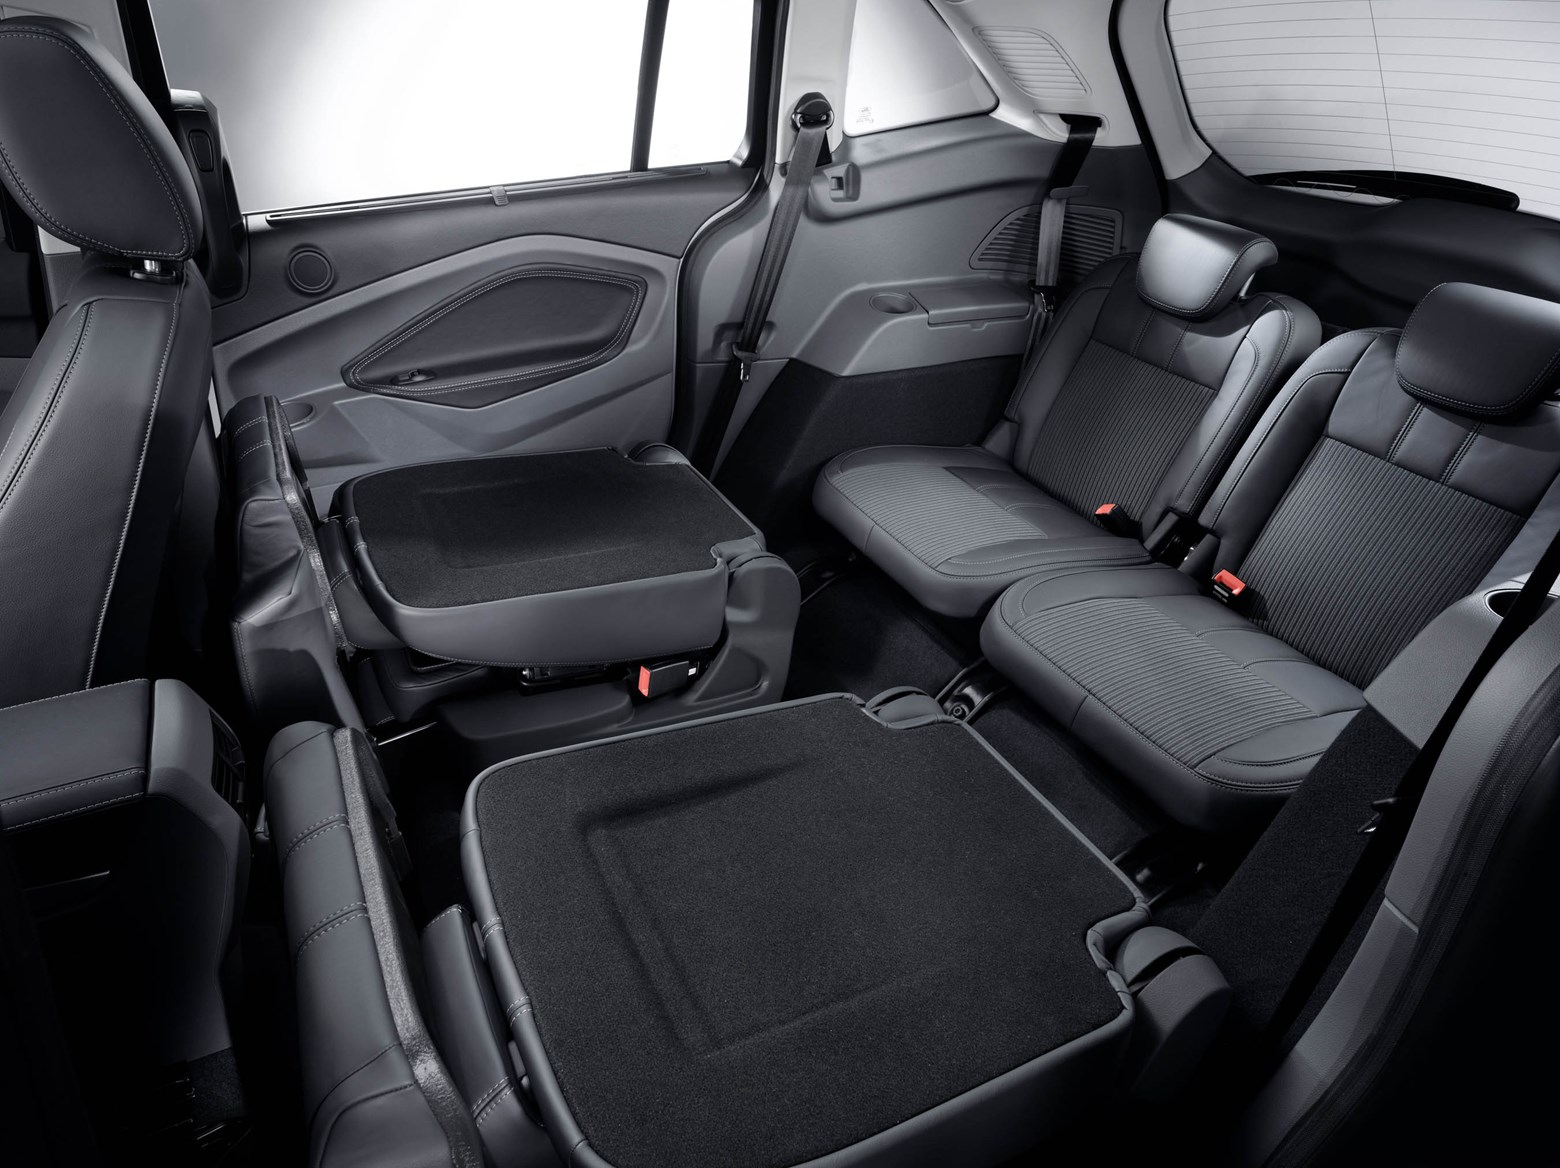 ford c max estate review 2010 parkers. Black Bedroom Furniture Sets. Home Design Ideas